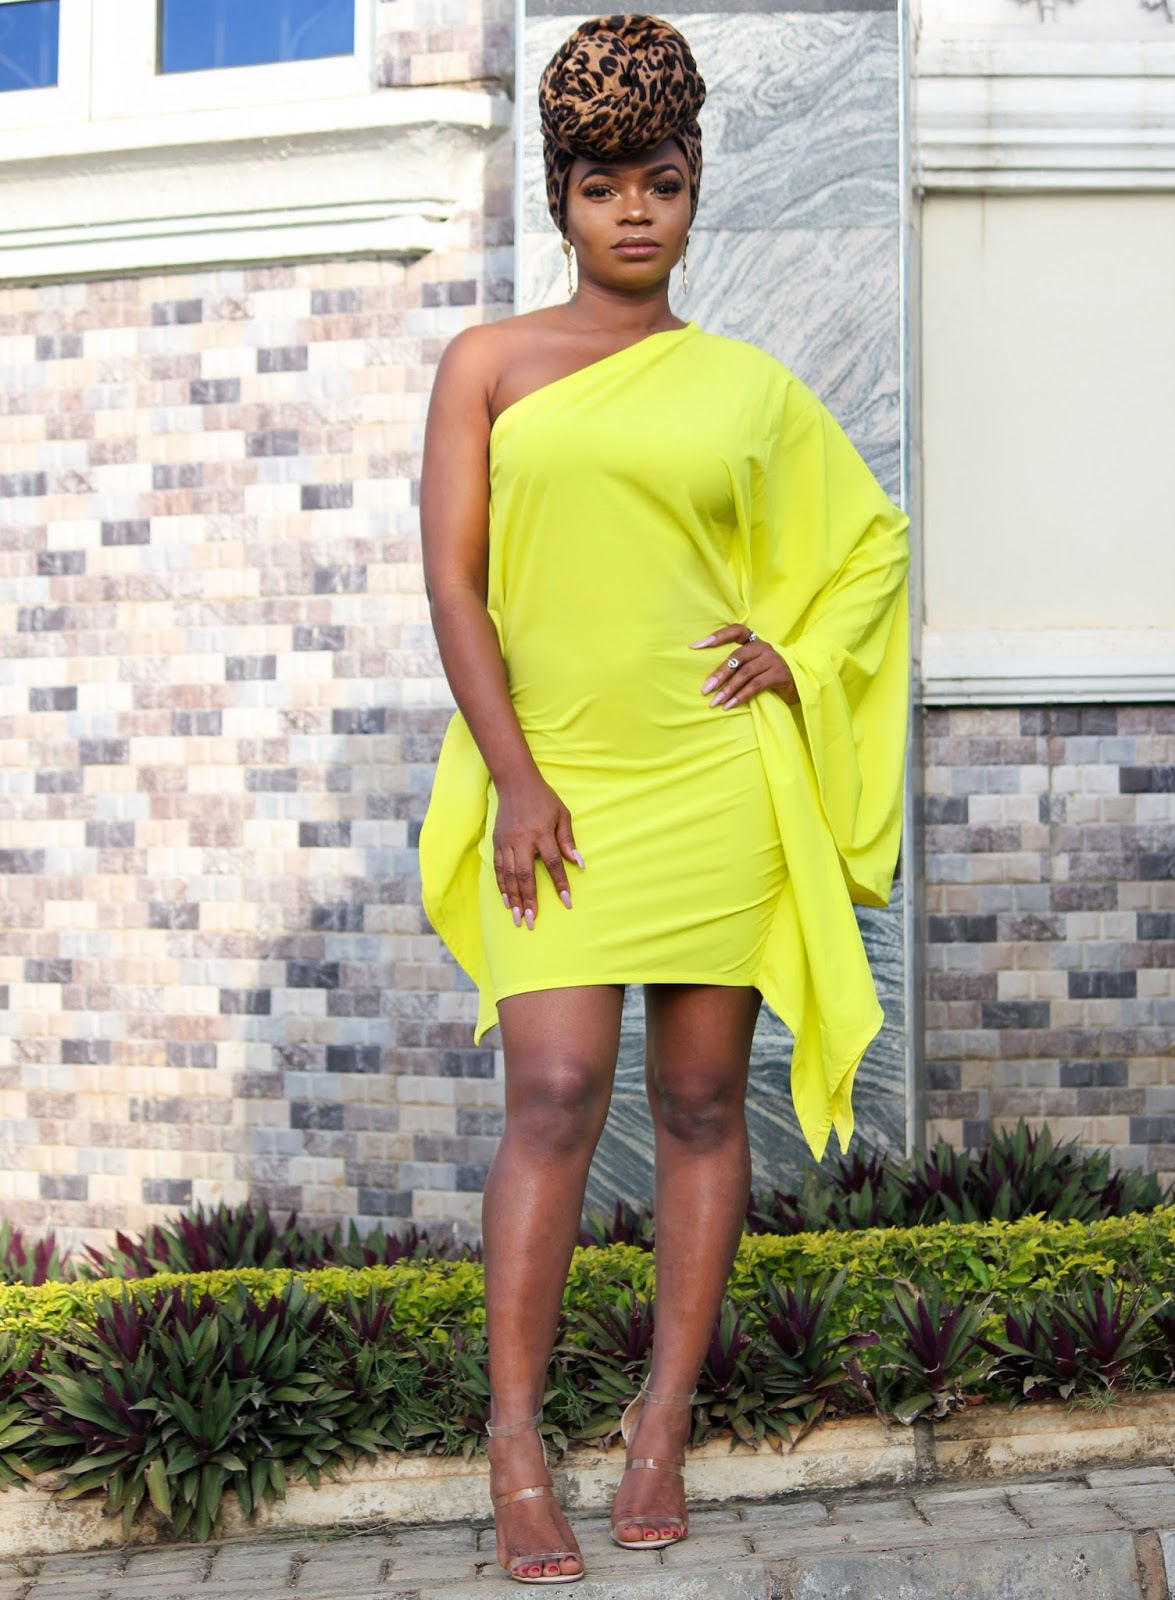 ONE SHOULDER DRESS - One Shoulder Bat-wing Style Dress in Neon from Porshher.